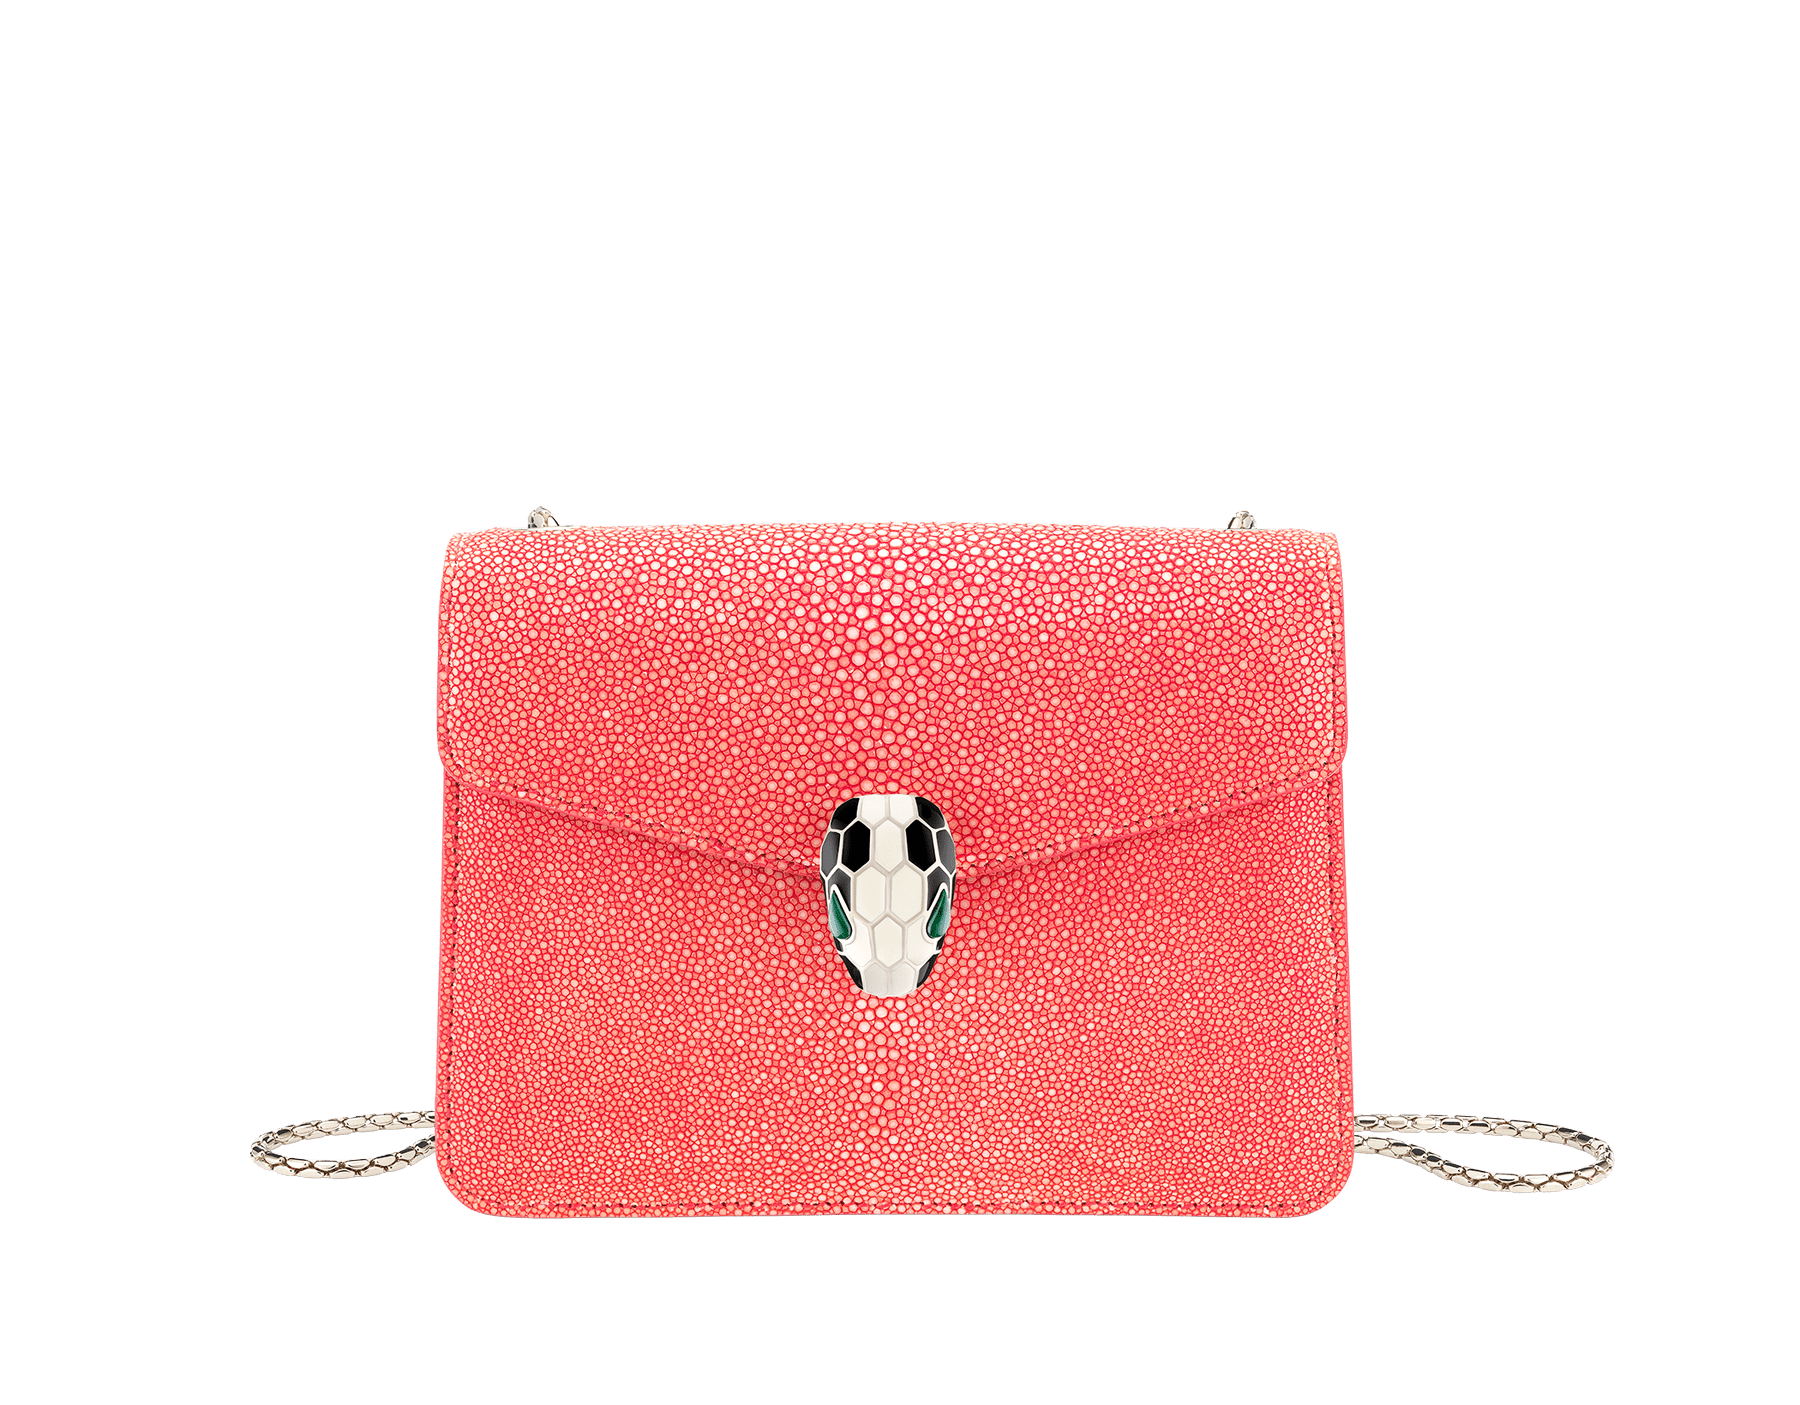 """Serpenti Forever"" crossbody bag with a multicolored ""Multishaded"" galuchat skin body and berry tourmaline calf leather sides. Iconic snakehead closure in dark ruthenium plated brass enriched with berry tourmaline and black enamel, and black onyx eyes. 422-FG image 1"